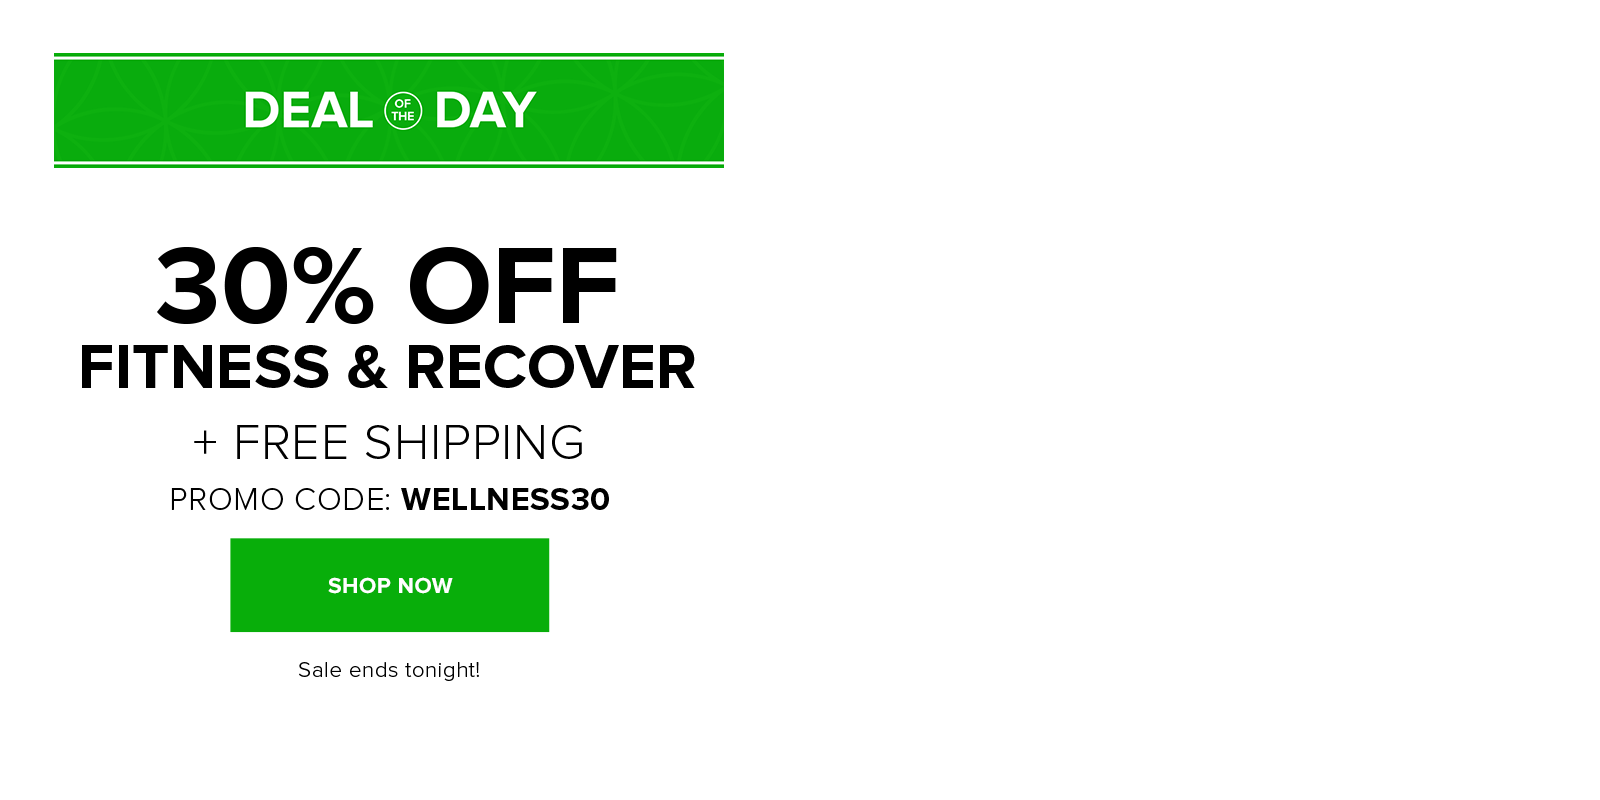 30% off fitness and recovery with code WELLNESS30